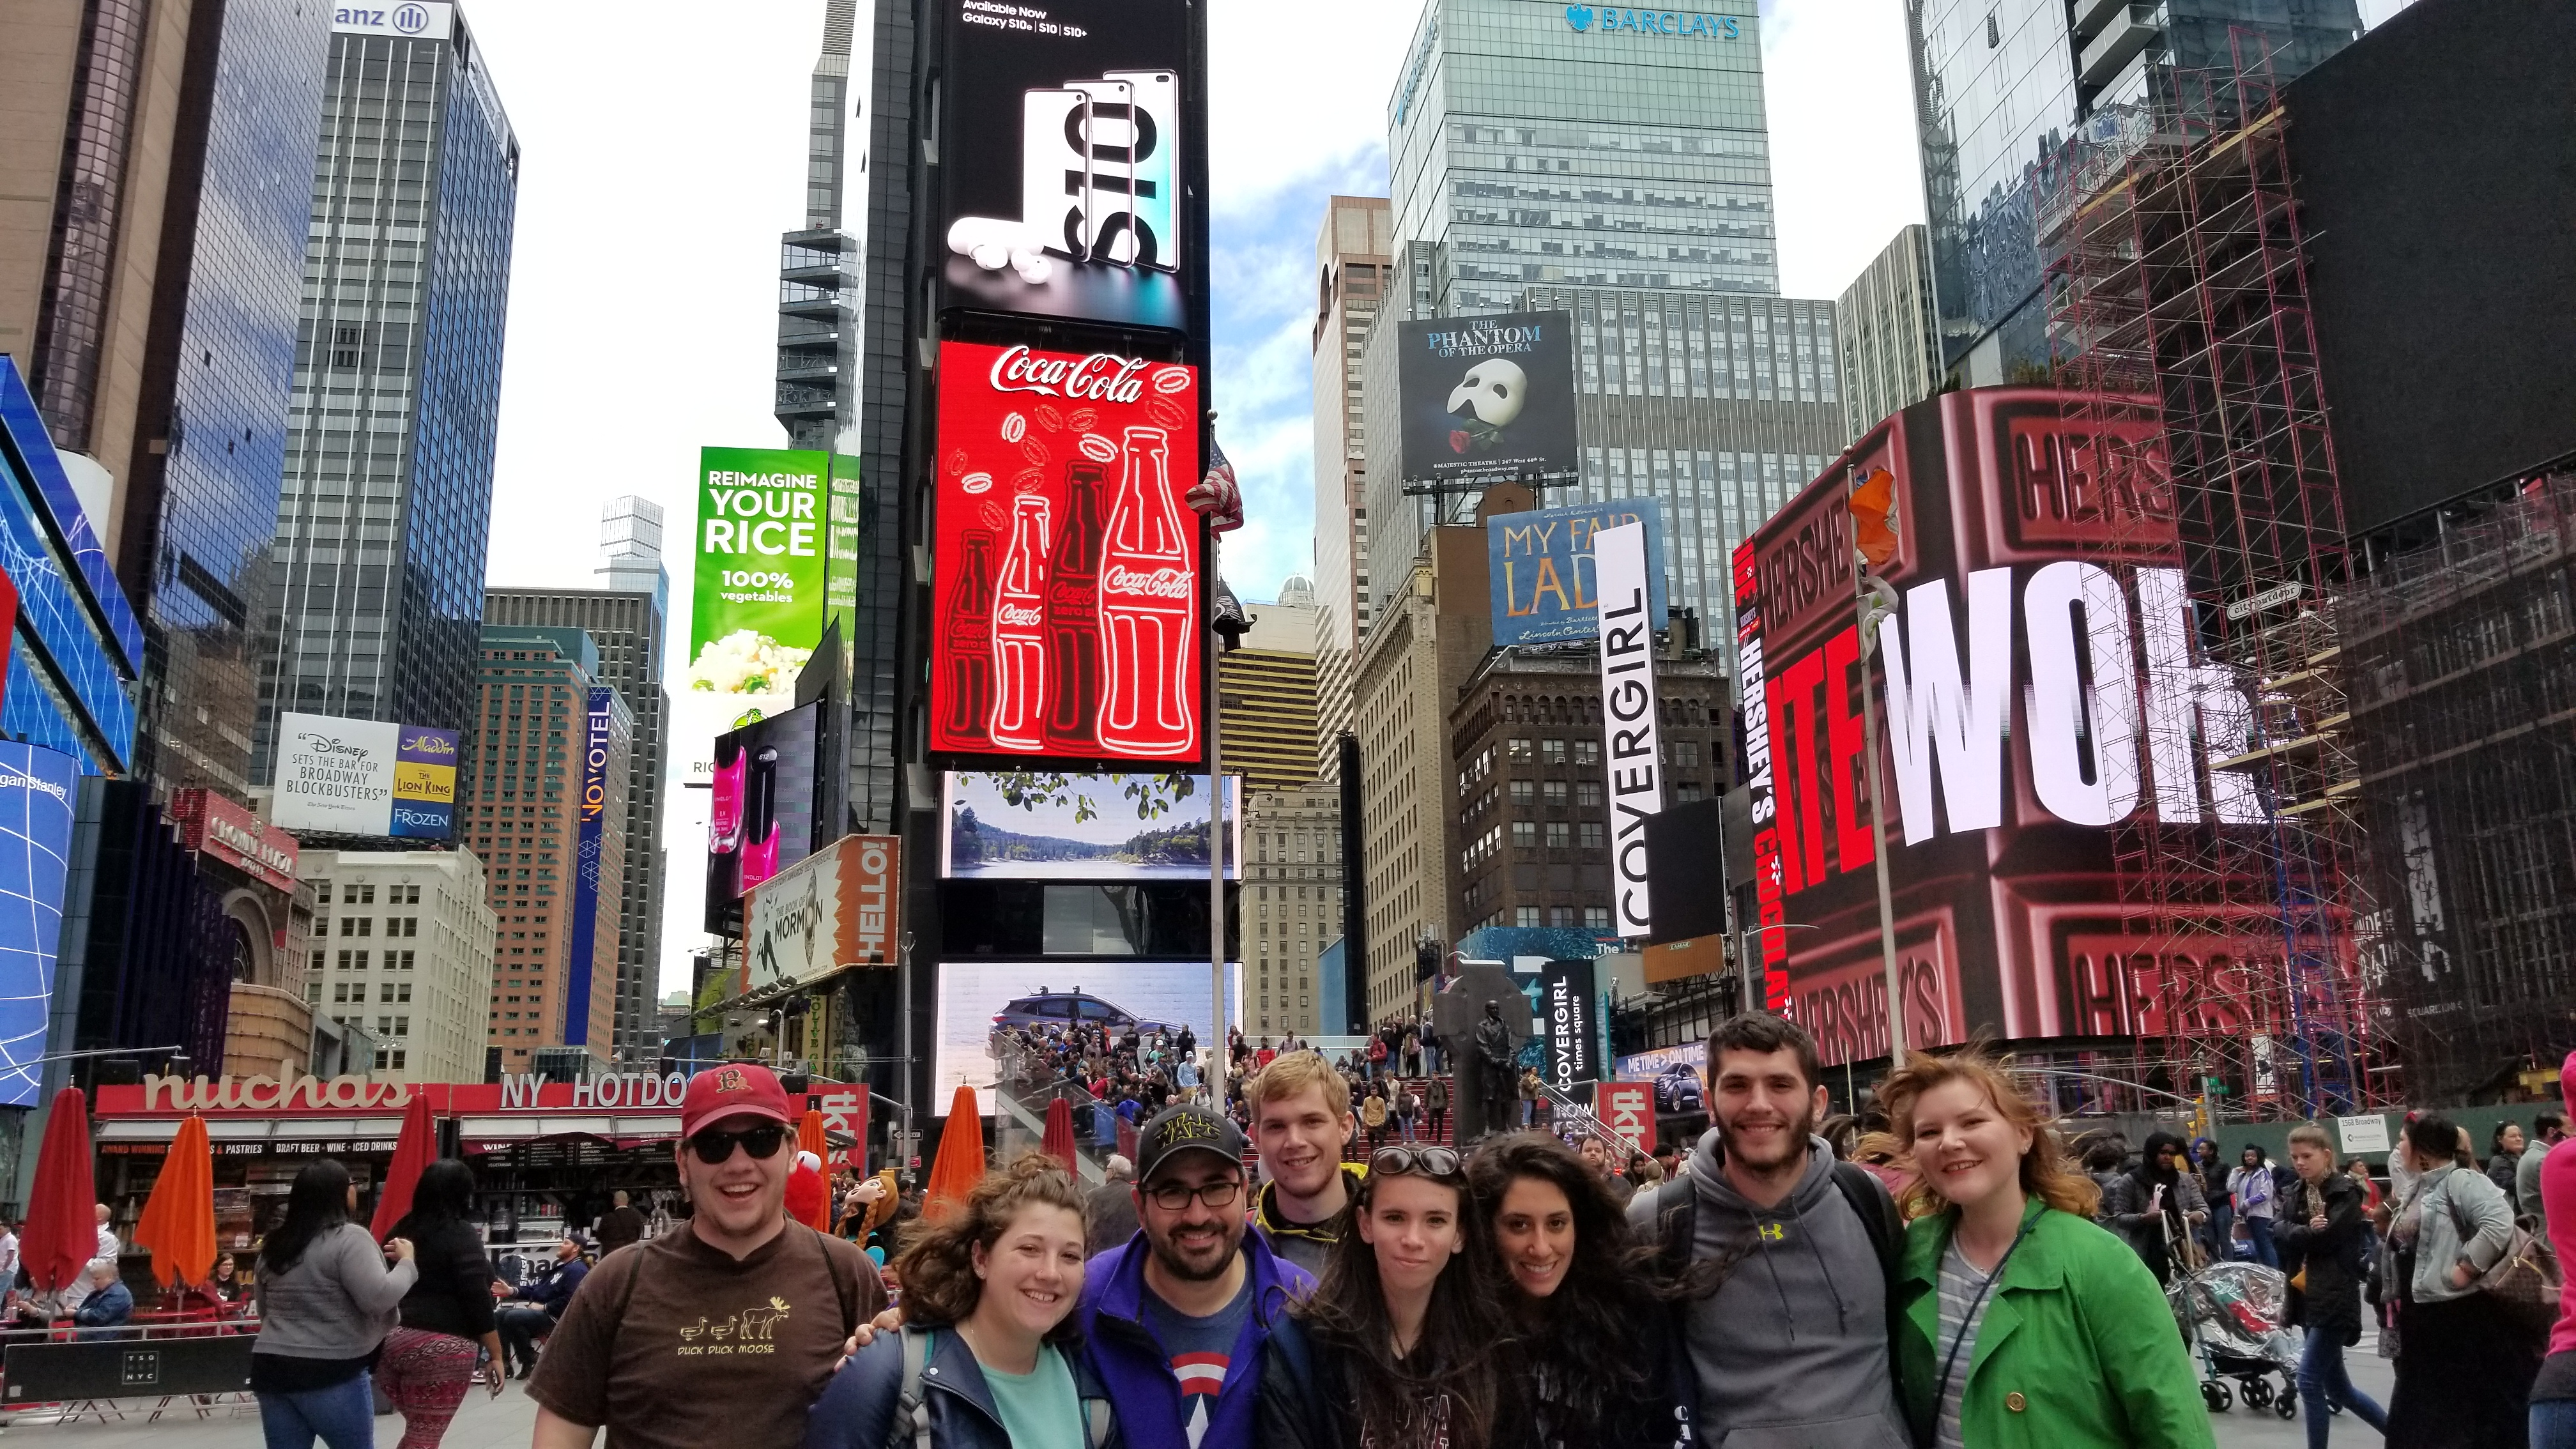 Me and my team of hooligans in Times Square on Sightseeing Day.